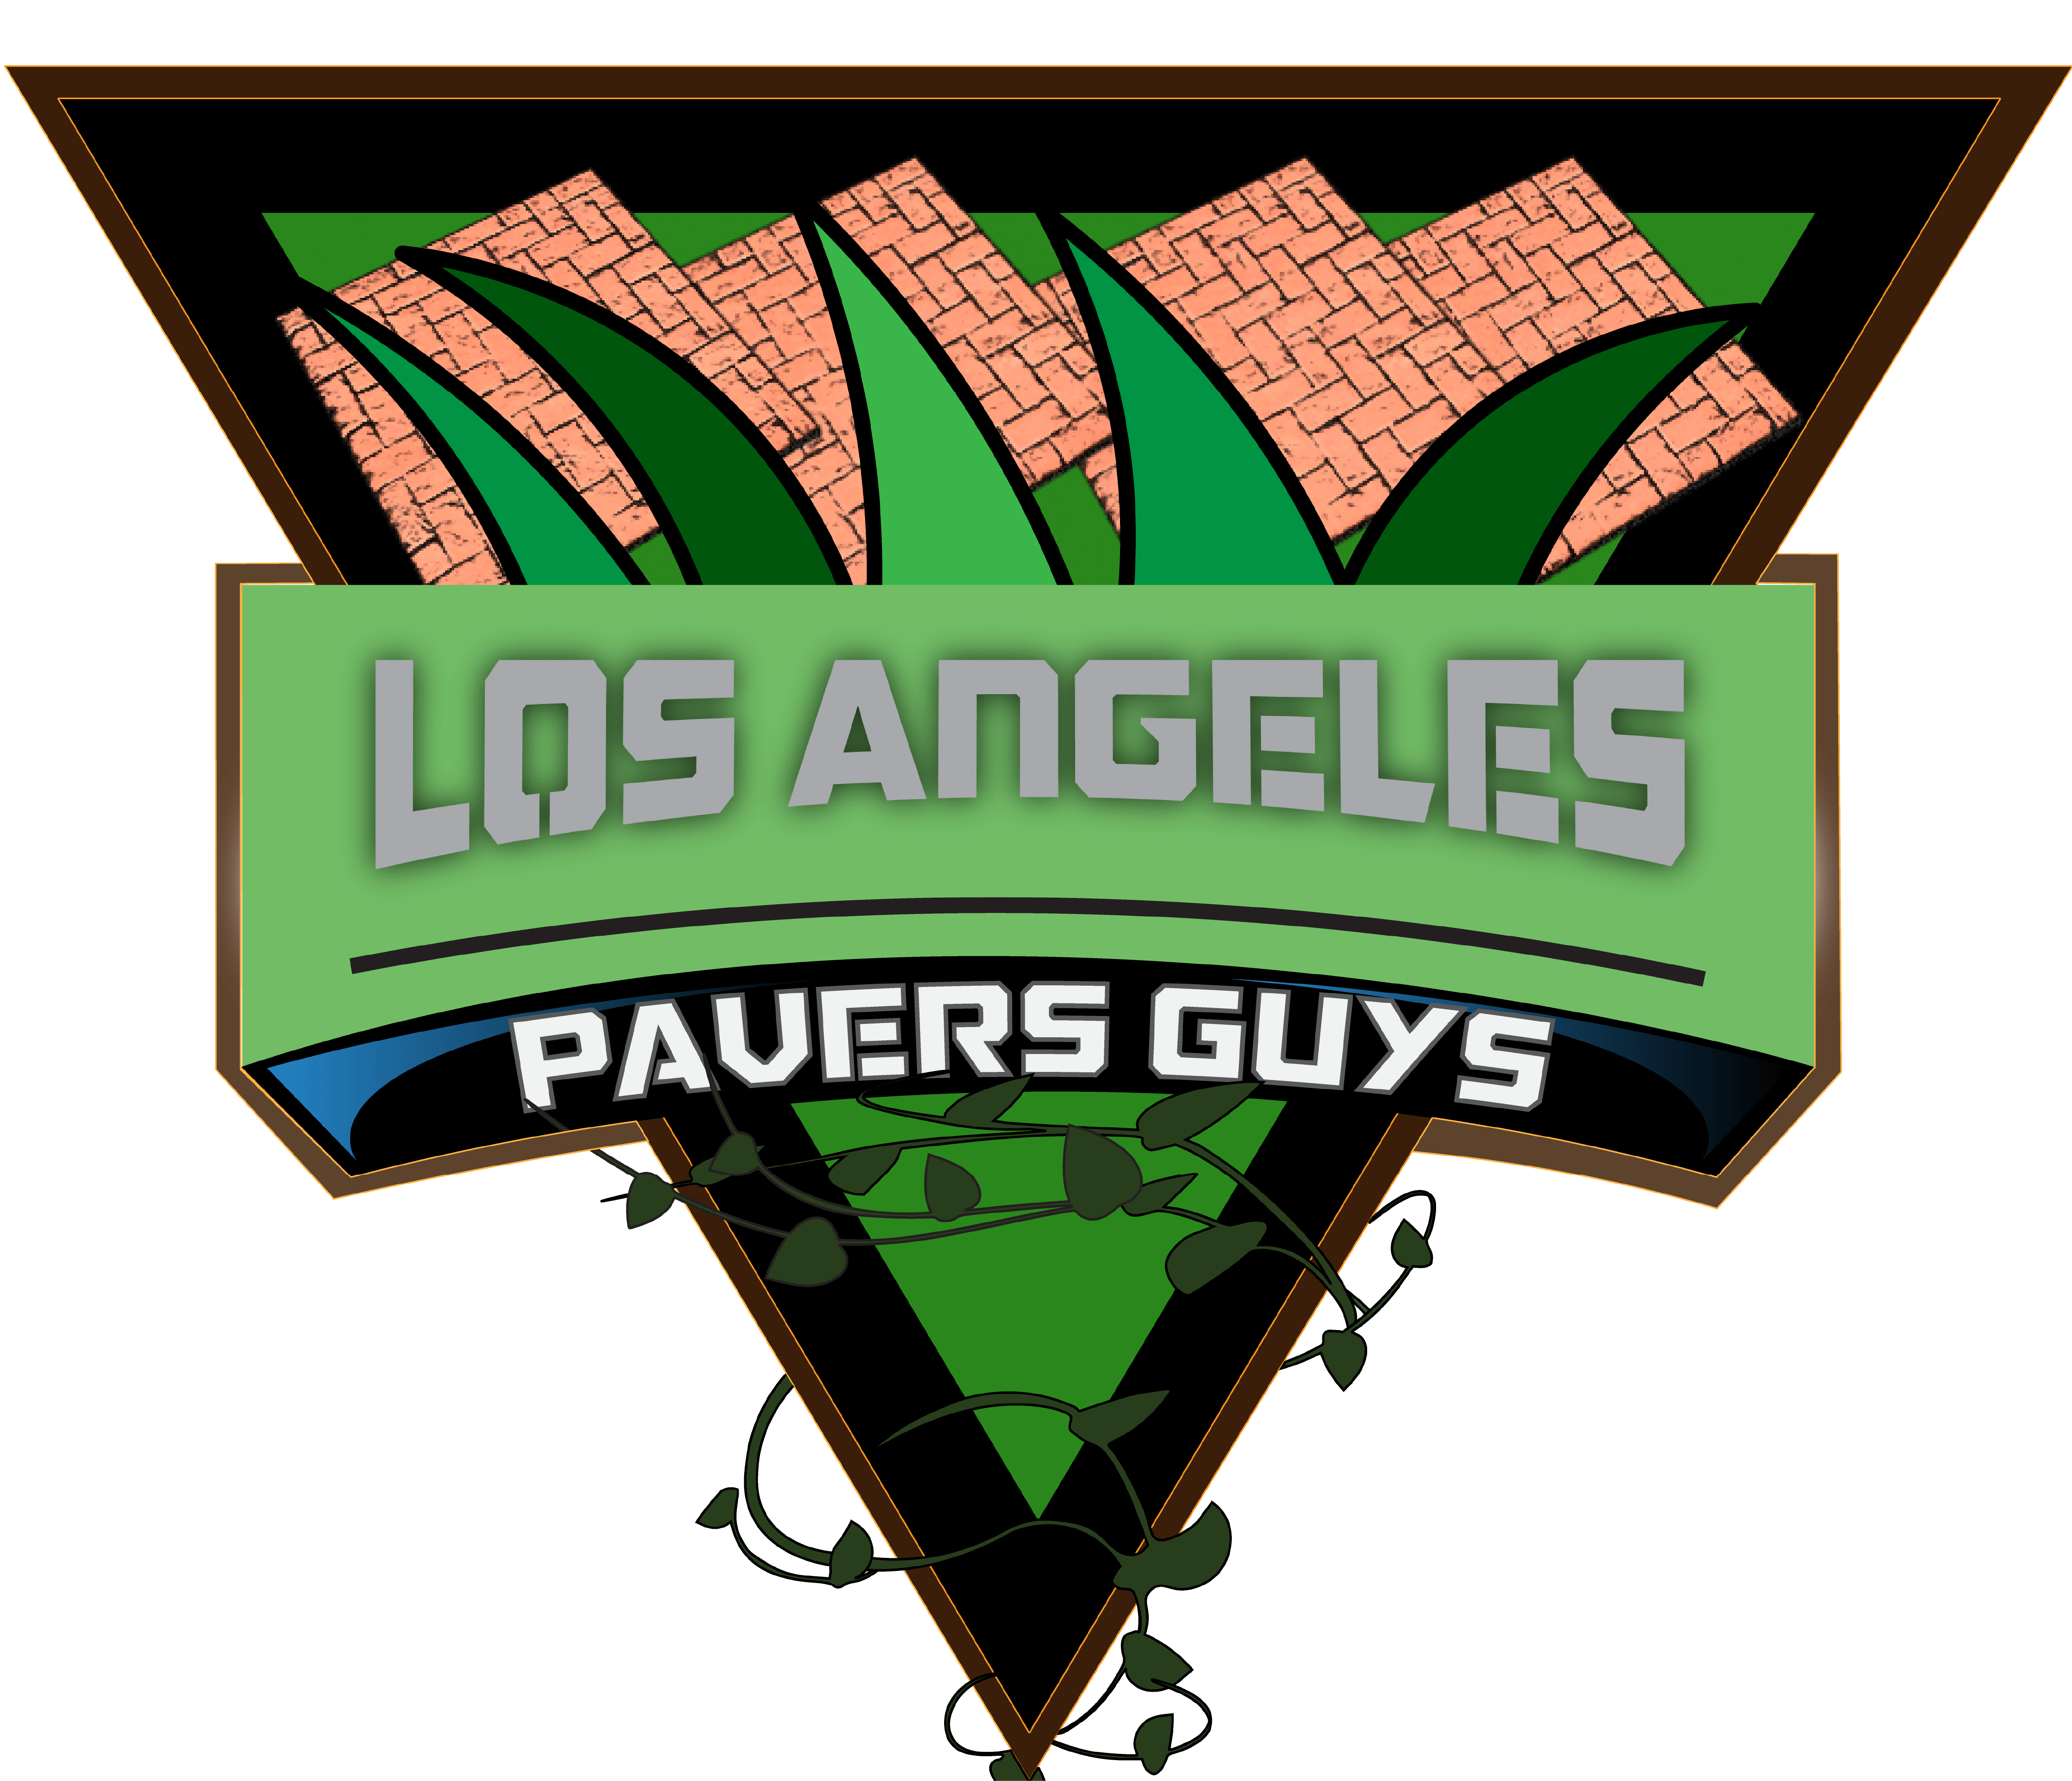 LA Paver and Remodeling Group, the Best Local Company for Driveway Paving in Los Angeles, CA Announces Expansion of Its Services, Offering Retaining Wall Installation and Exterior Remodeling Services